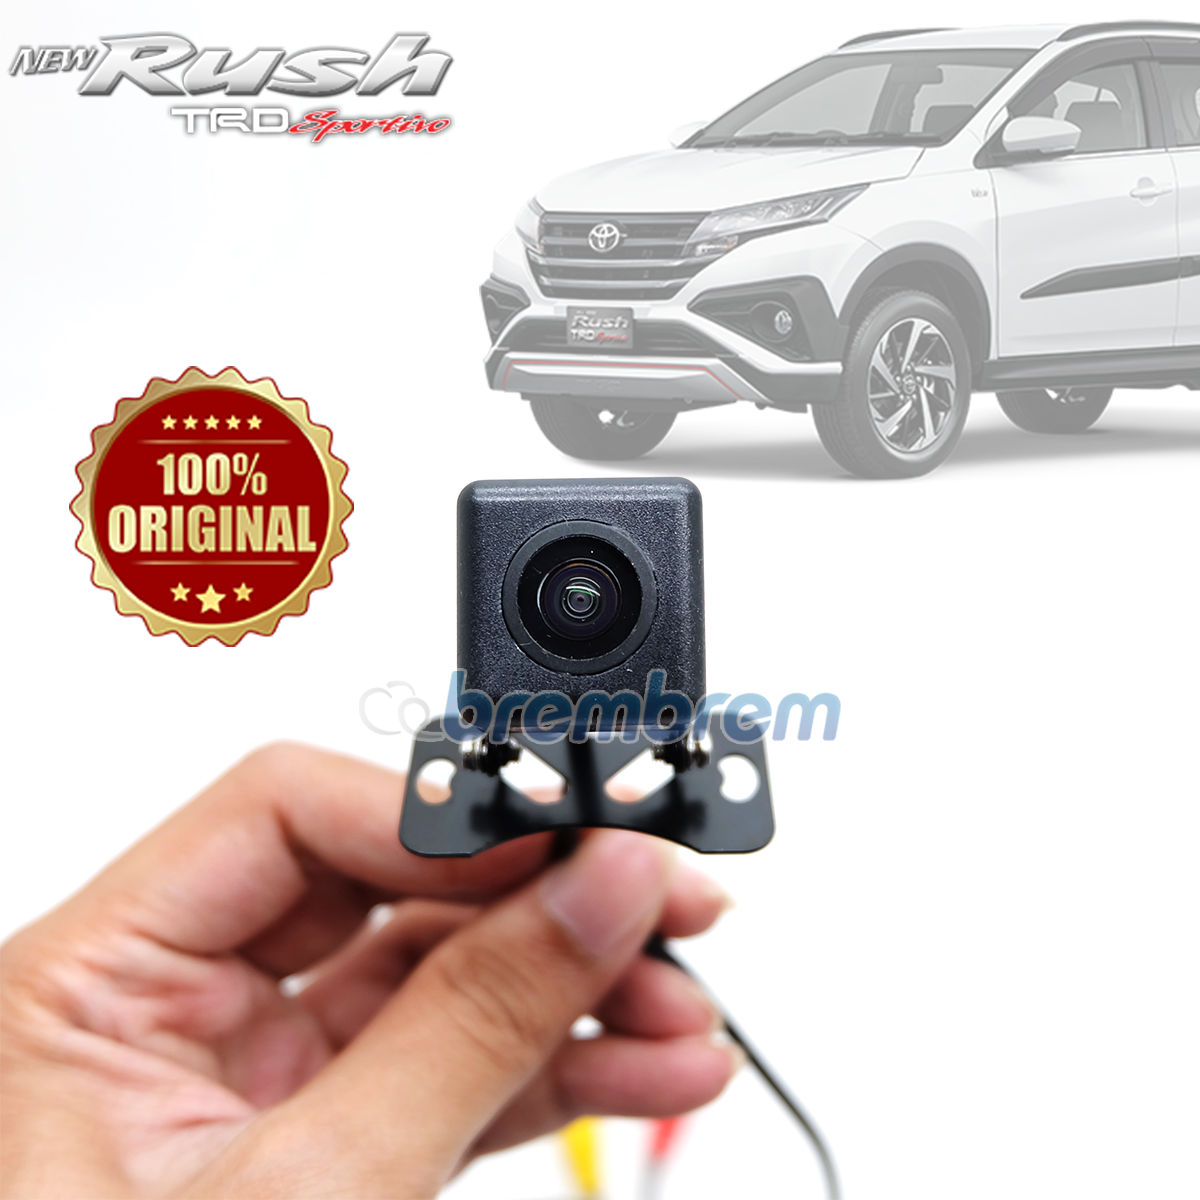 OTOPROJECT UNIVERSAL - KAMERA MUNDUR KOTAK TOYOTA ALL NEW RUSH